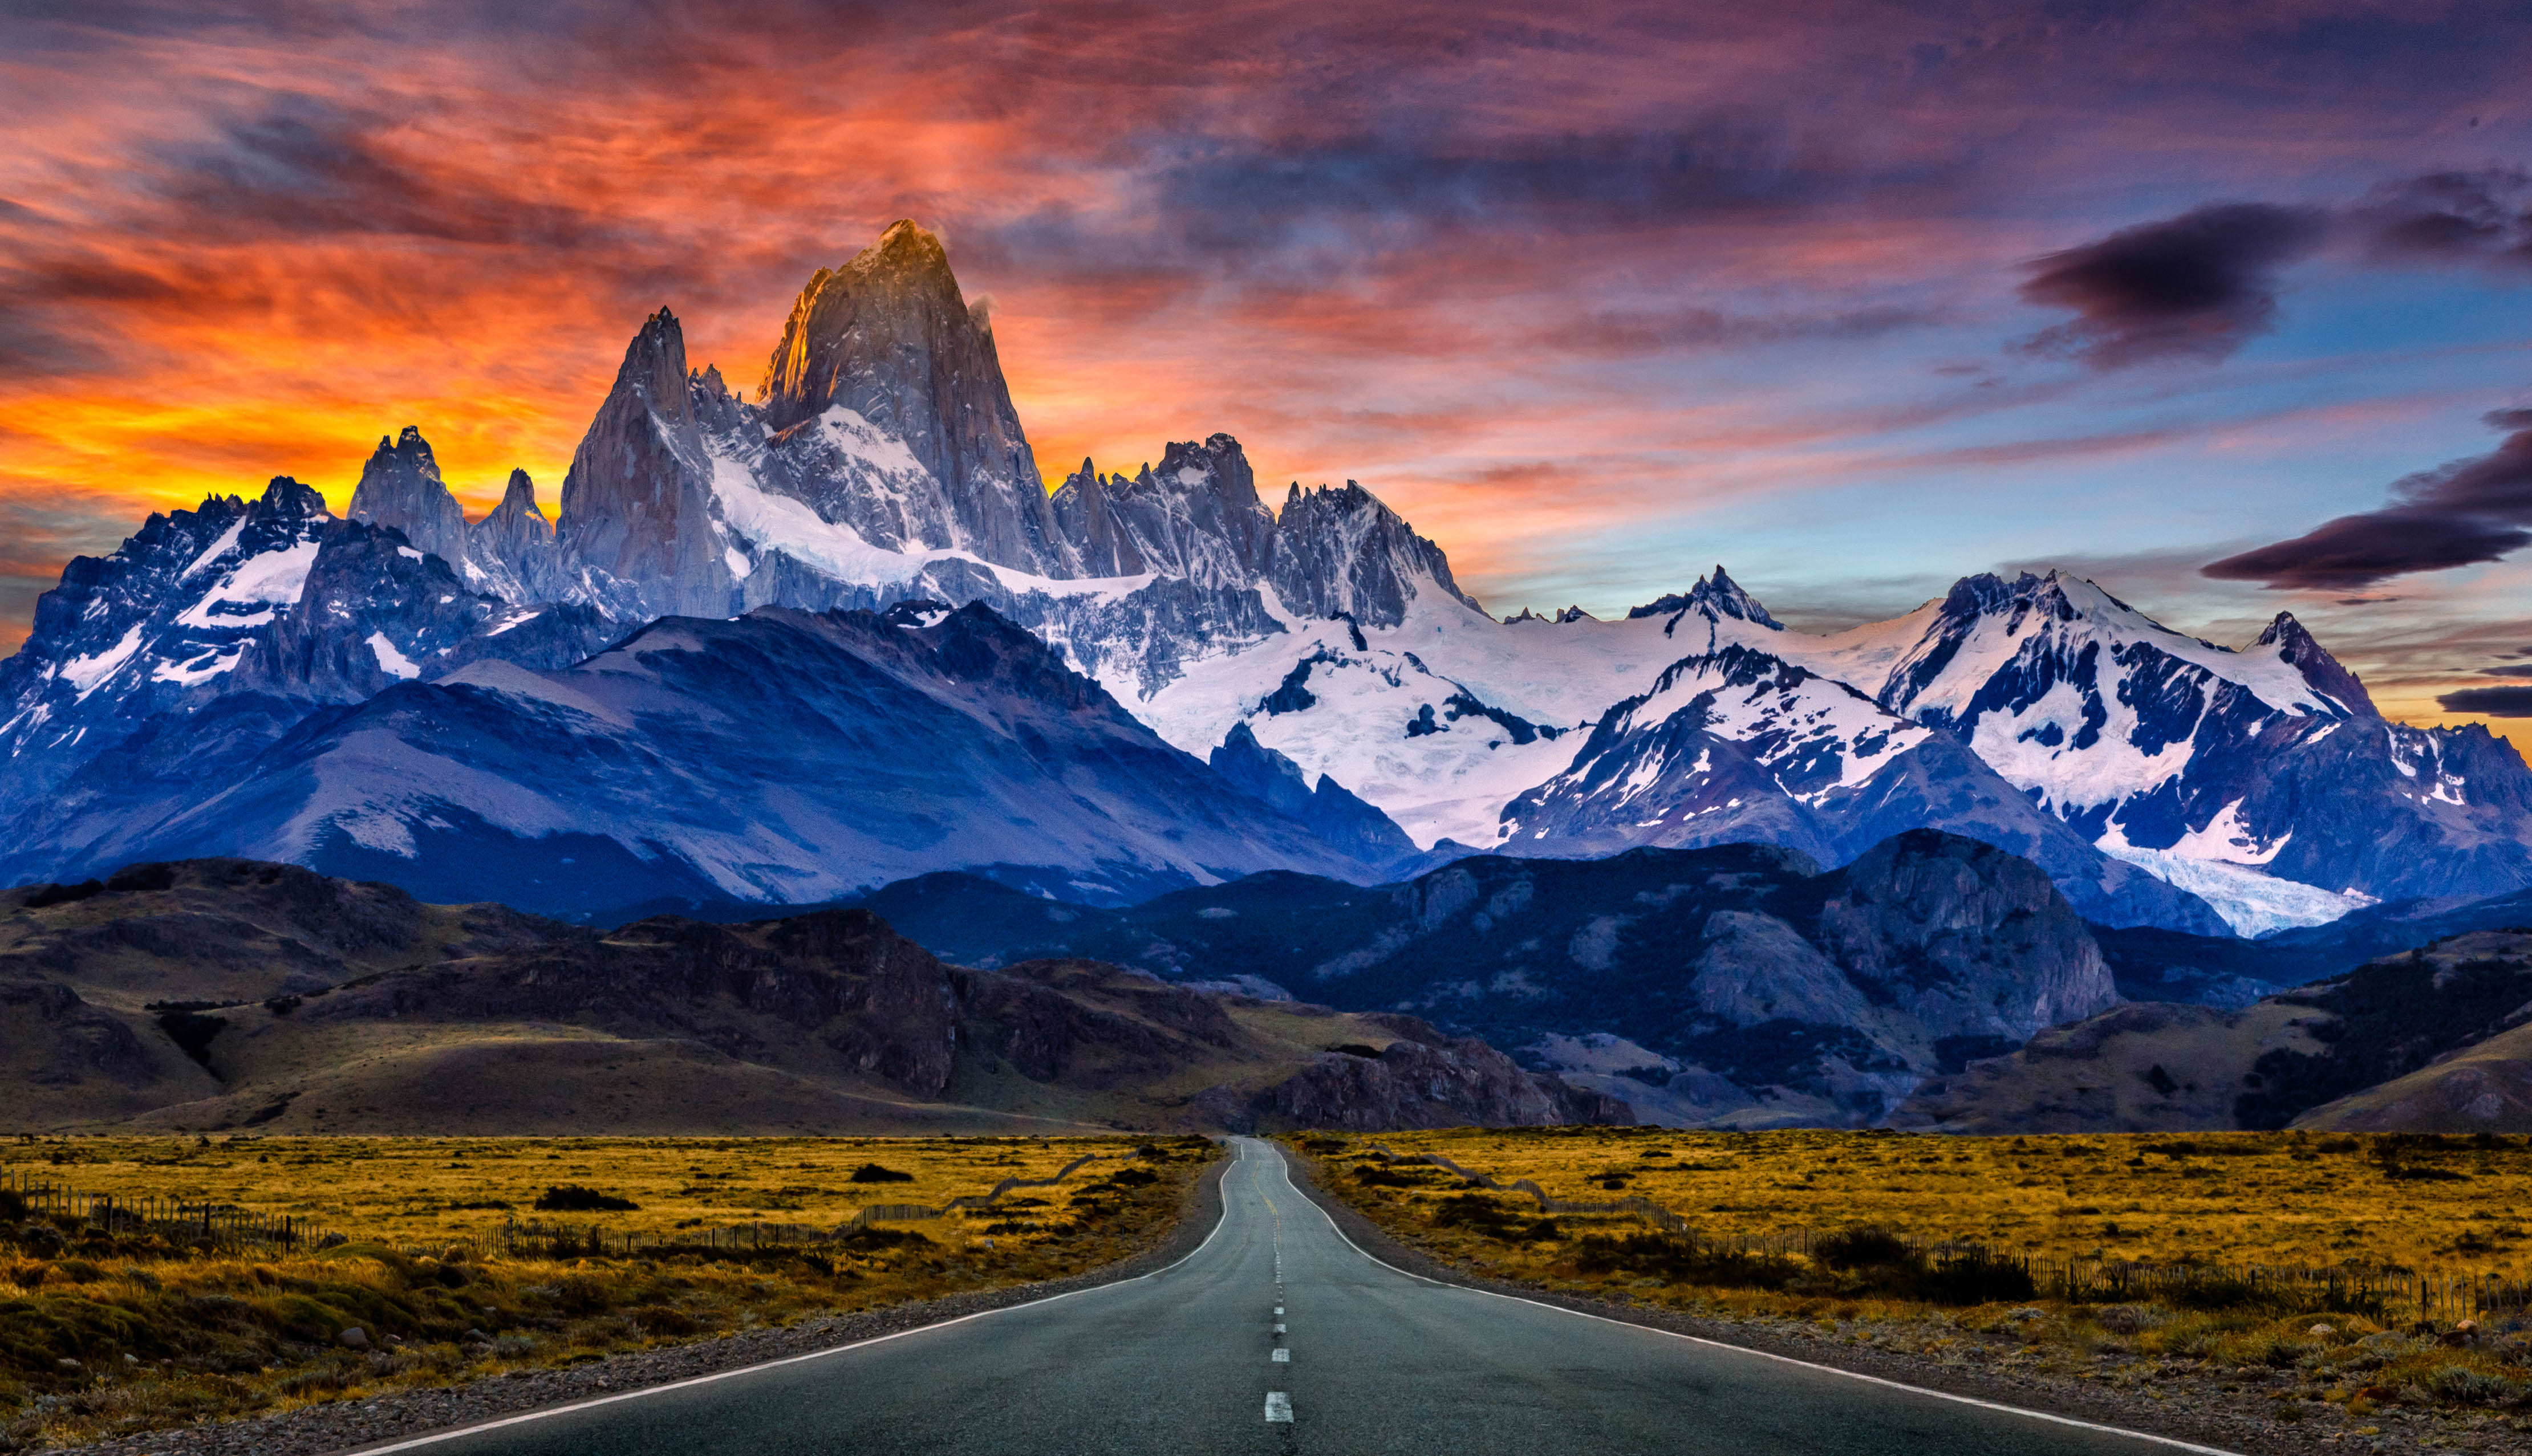 HQ Mount Fitzroy Wallpapers | File 2171.33Kb